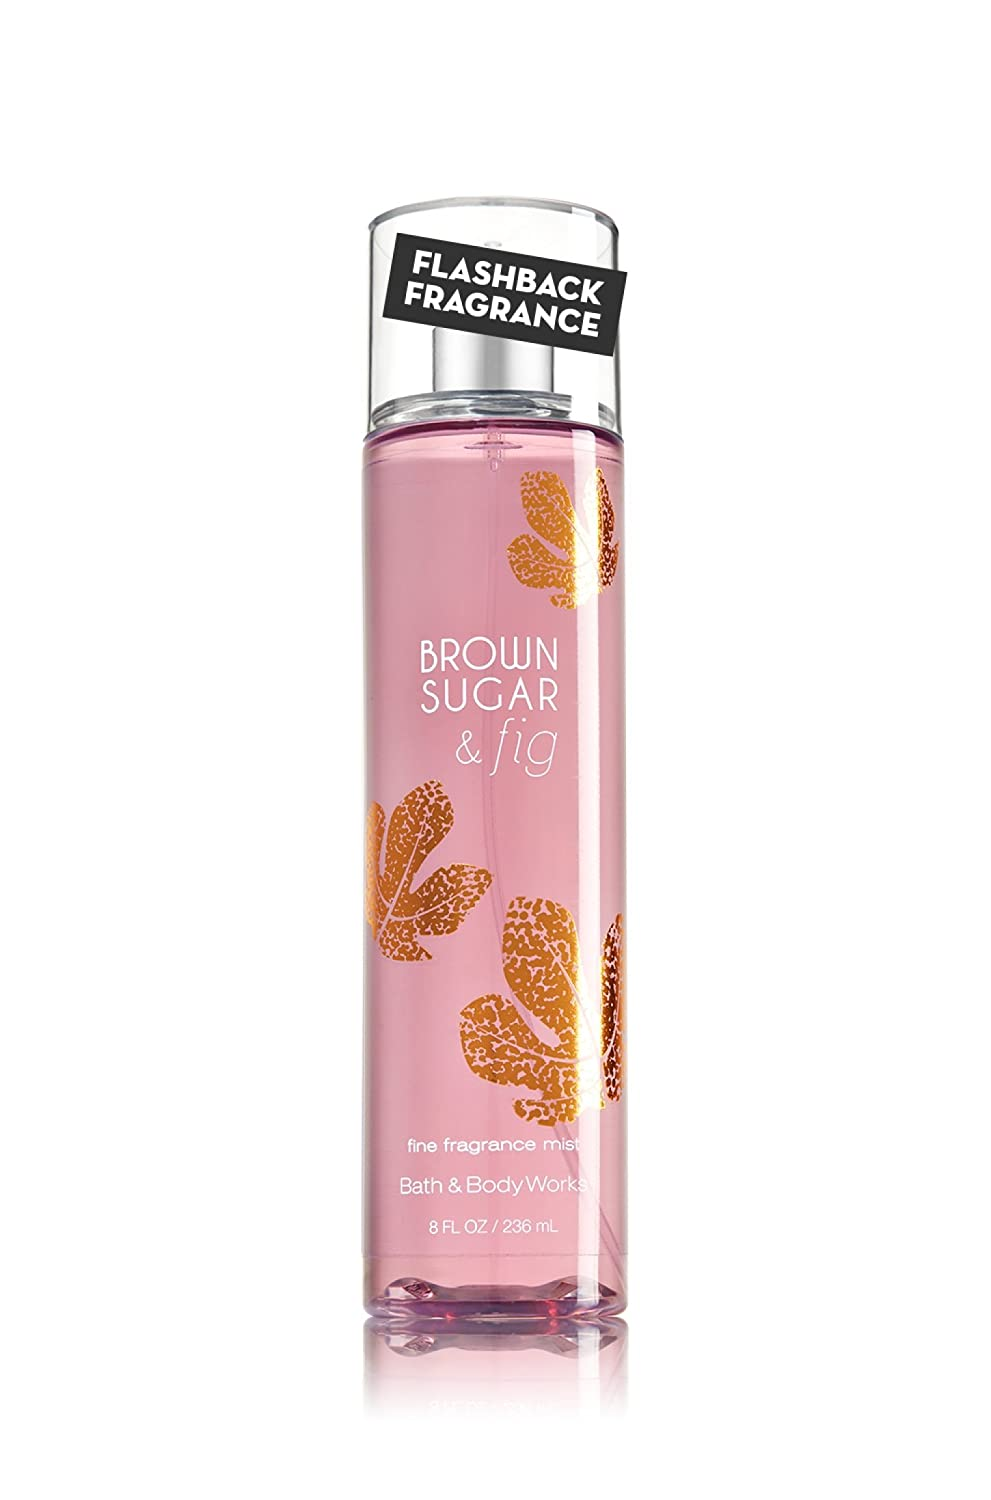 Bath & Body Works Signature Collection BROWN SUGAR & FIG Fragrance Mist 8 fl oz / 236 mL